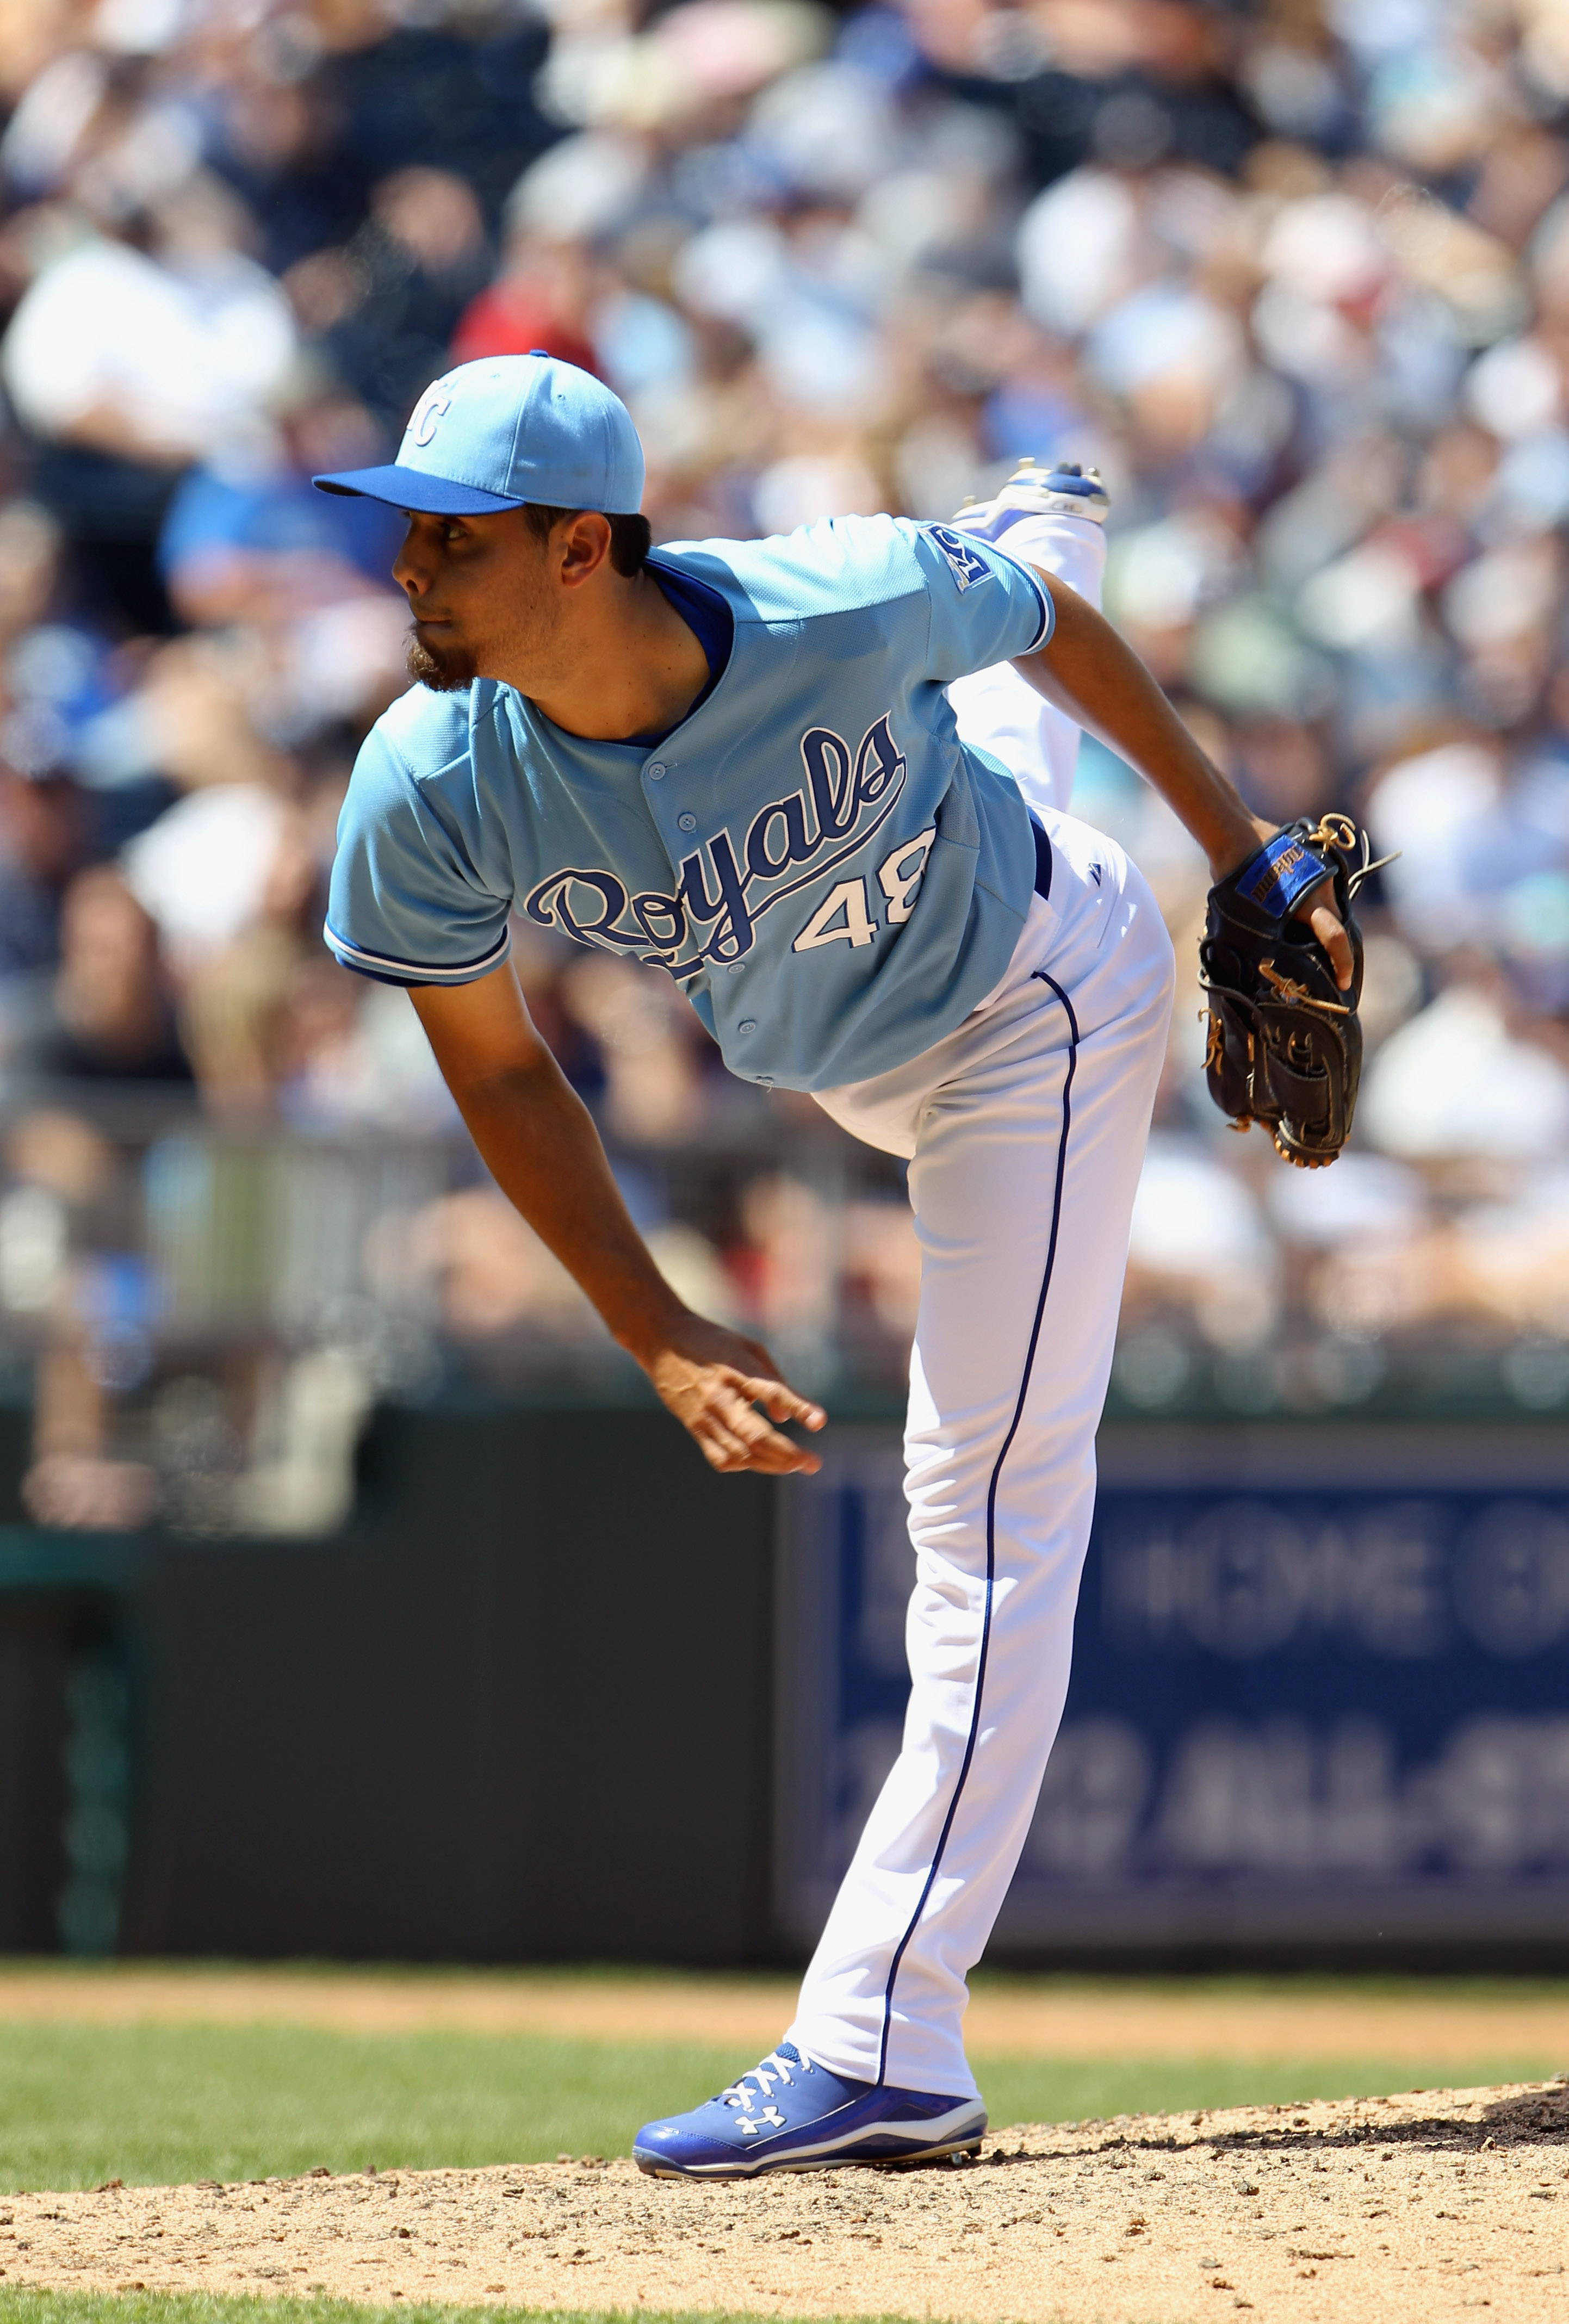 KANSAS CITY, MO - AUGUST 15:  Pitcher Joakim Soria #48 of the Kansas City Royals  in action during the game against the New York Yankees on August 15, 2010 at Kauffman stadium in Kansas City, Missouri.  (Photo by Jamie Squire/Getty Images)